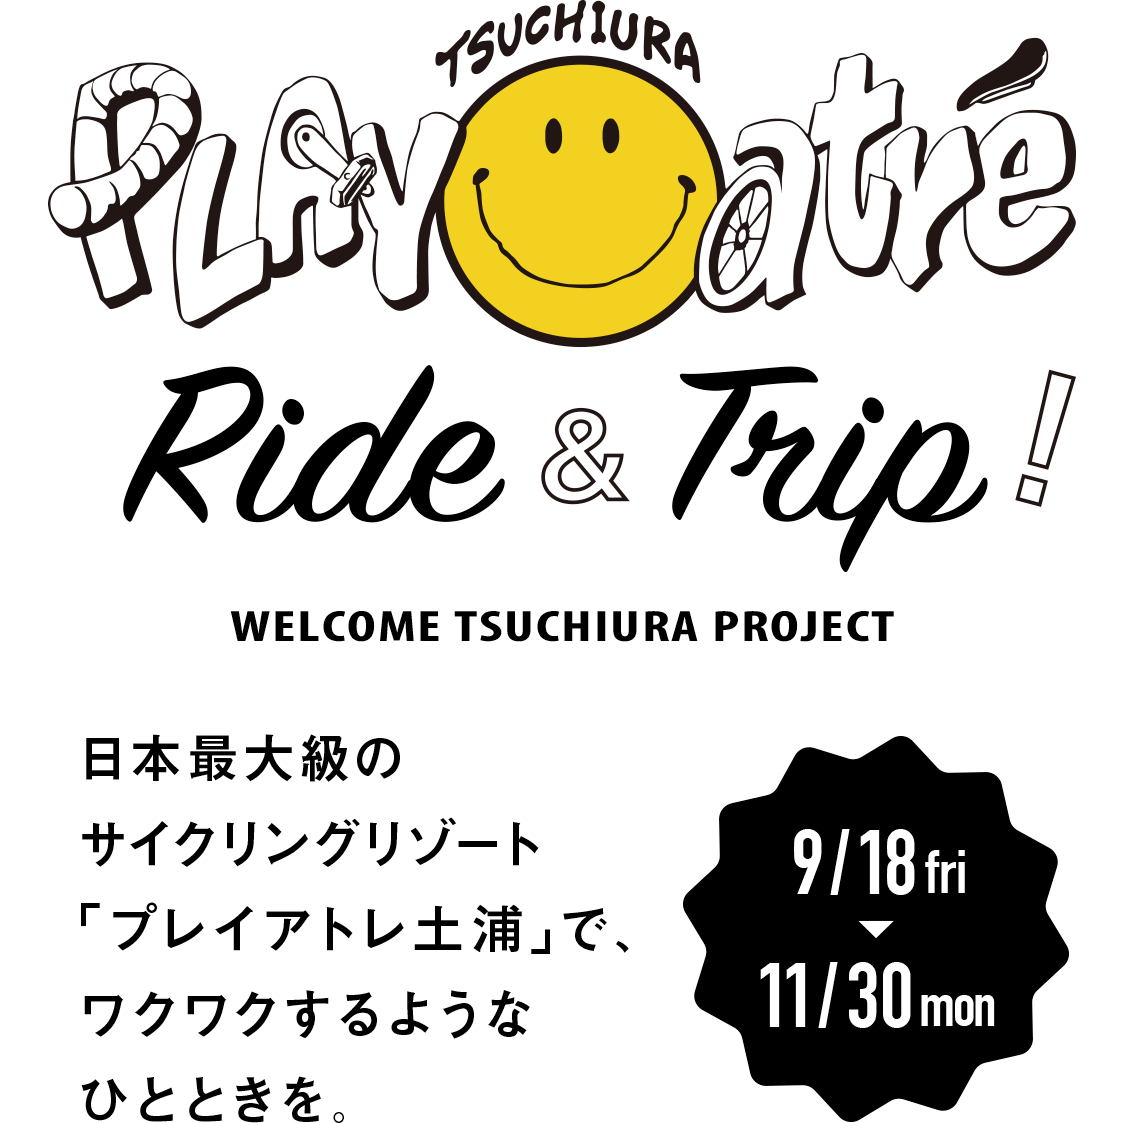 """Ride & Trip! 9/18fri → A time when we are excited in 11/30mon Cycling Resort, cycling resort """"PLAYatré Tsuchiura."""""""